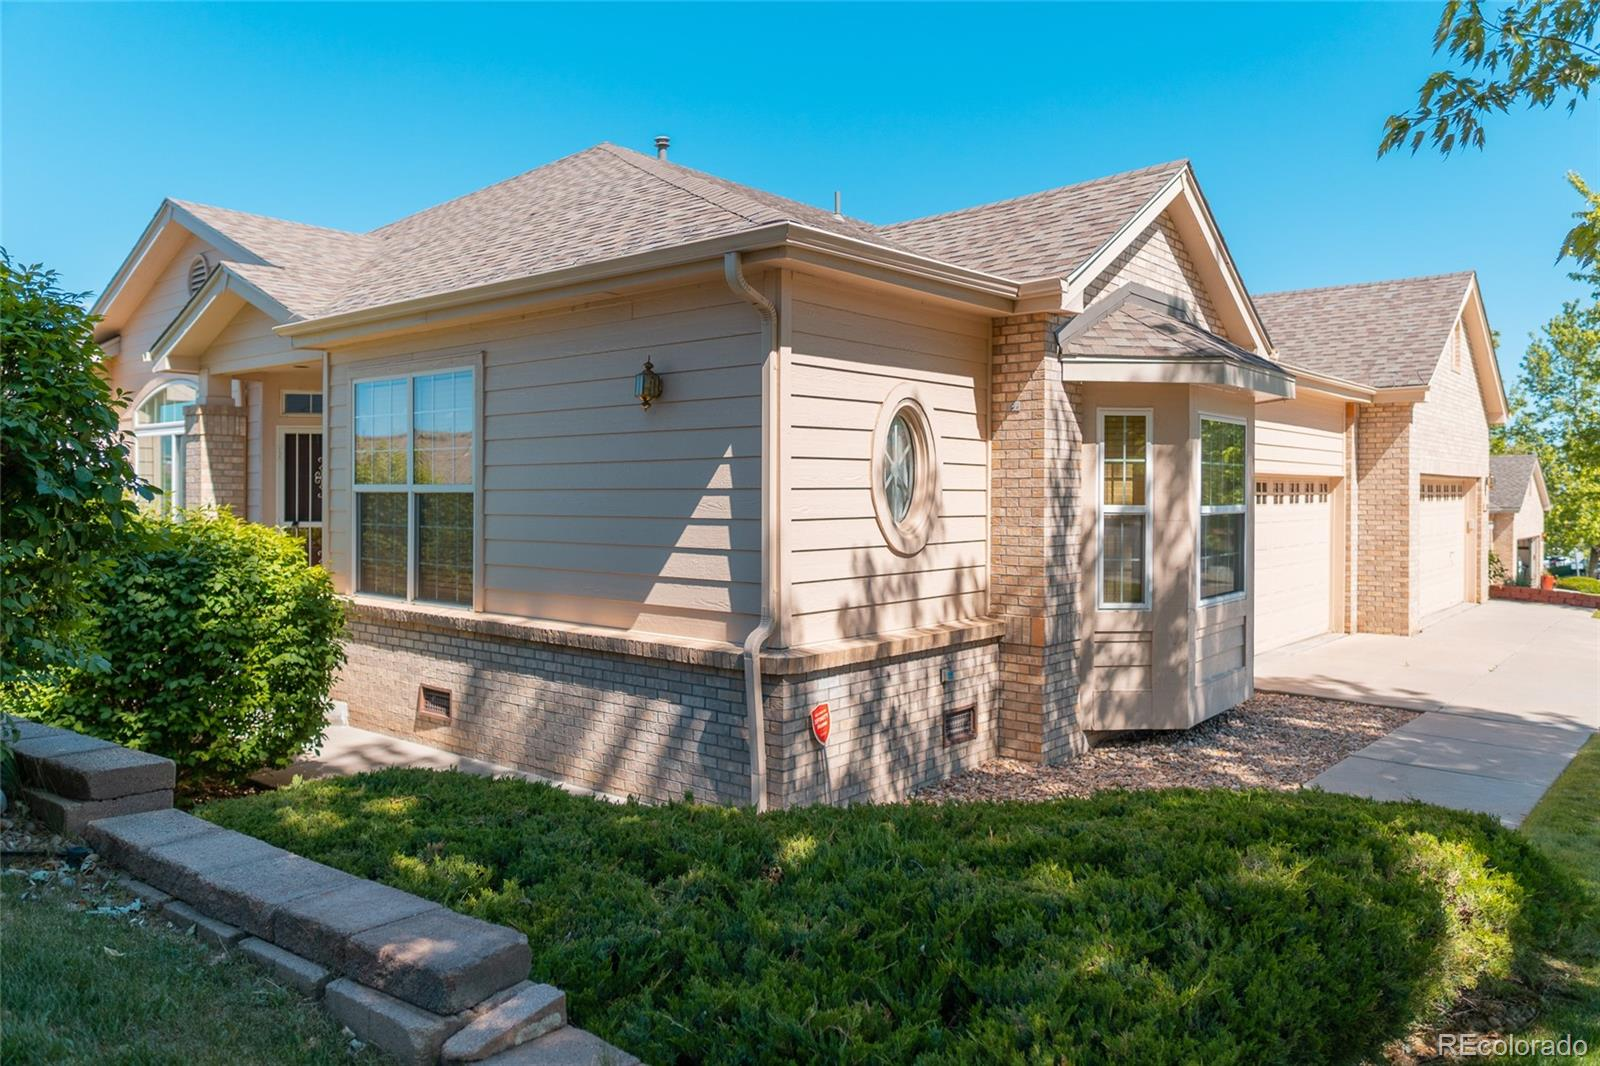 MLS# 4859119 - 32 - 9137 Woodland Drive, Highlands Ranch, CO 80126